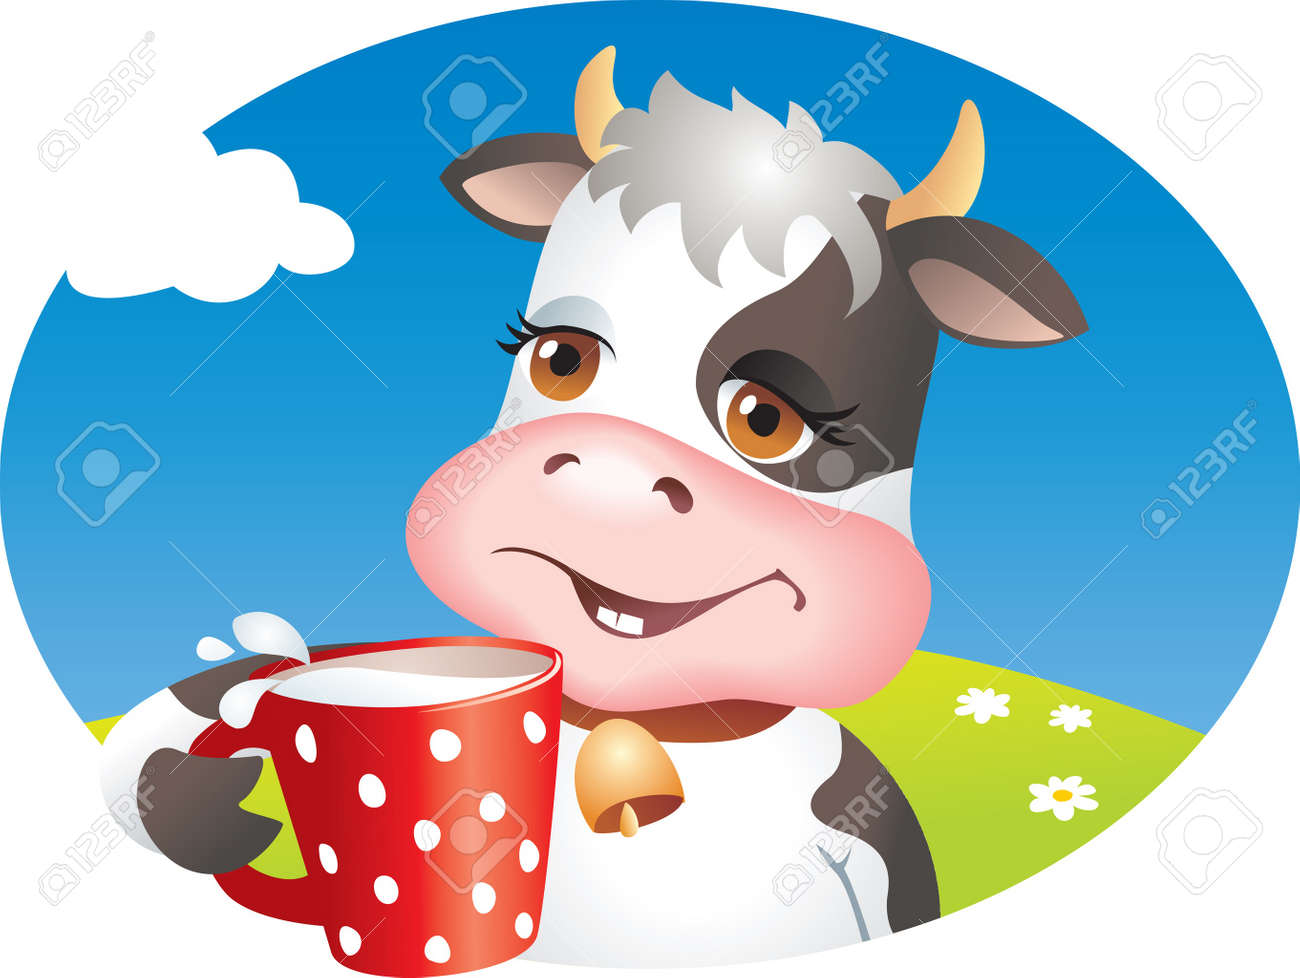 Funny cartoon cow drinking cup of milk. Lawn, flowers and sky. - 11979529